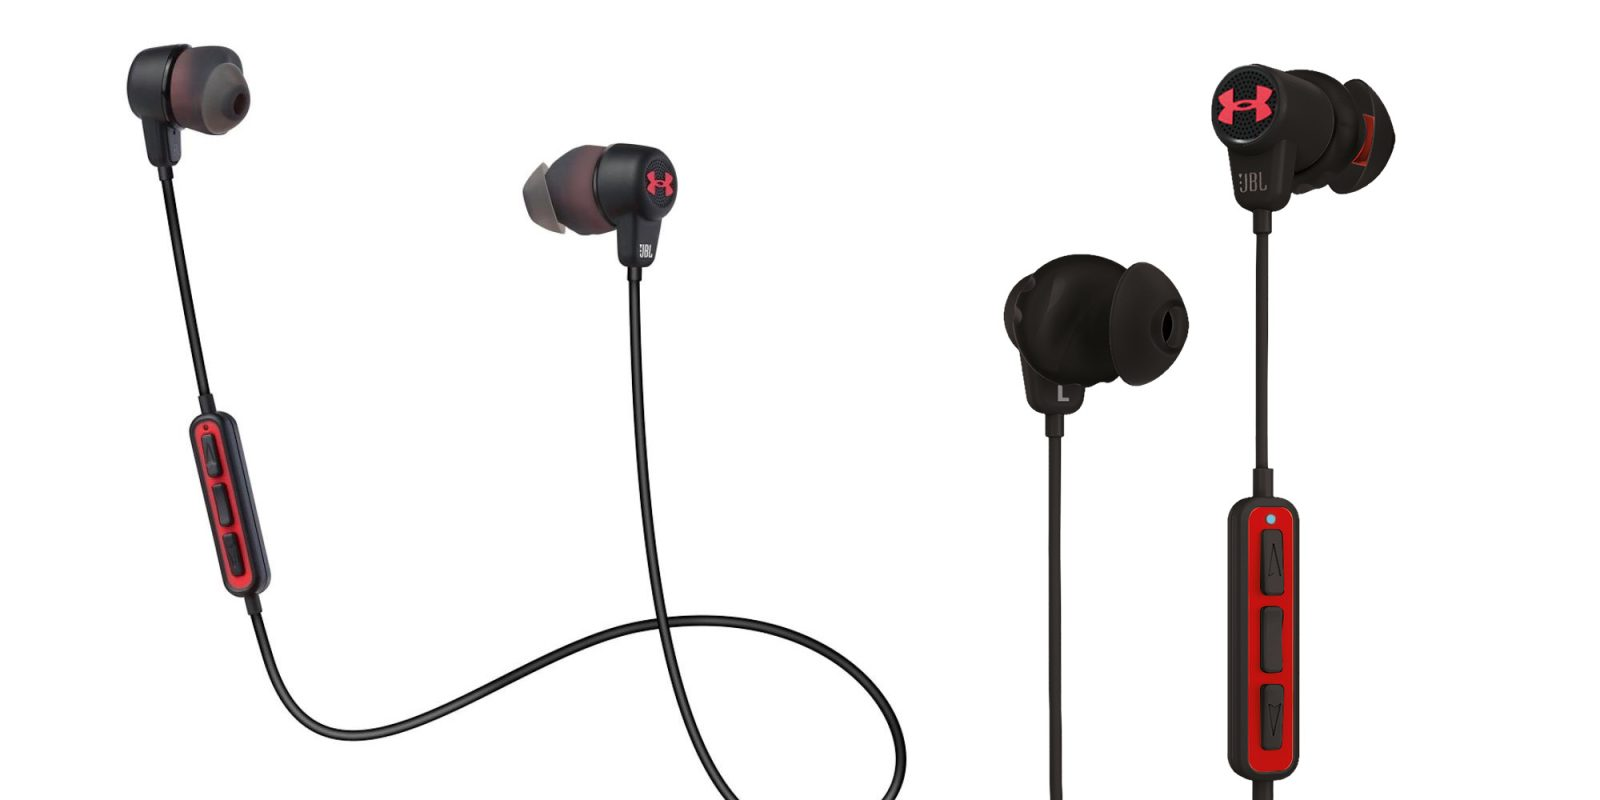 JBL Under Armour Wireless In-Ear Headphones drop to $30 (Reg. $85+), more